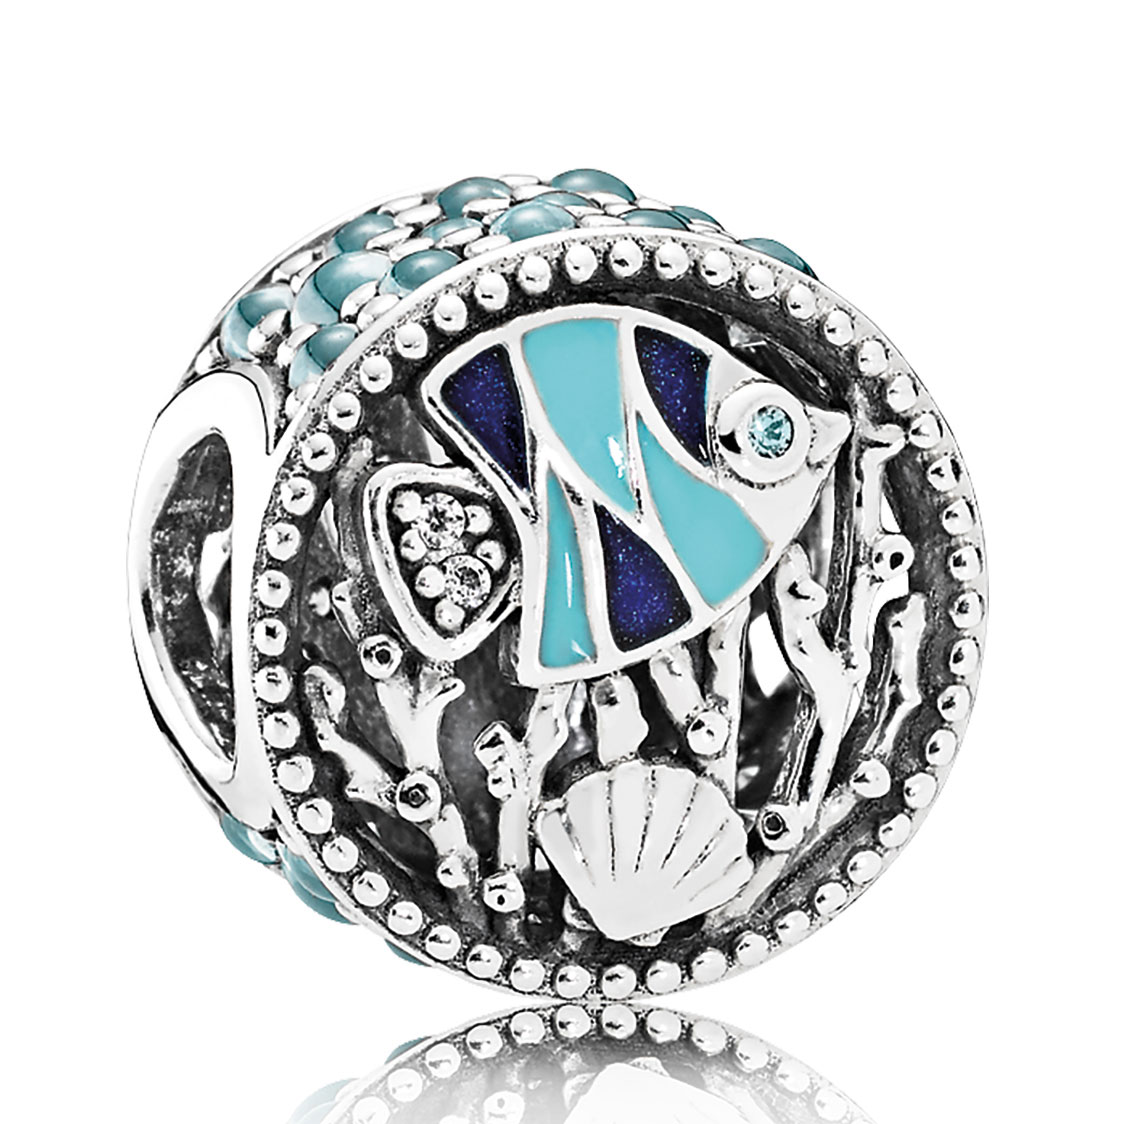 Pandora Ocean Life, Mixed Enamel & Multicolored